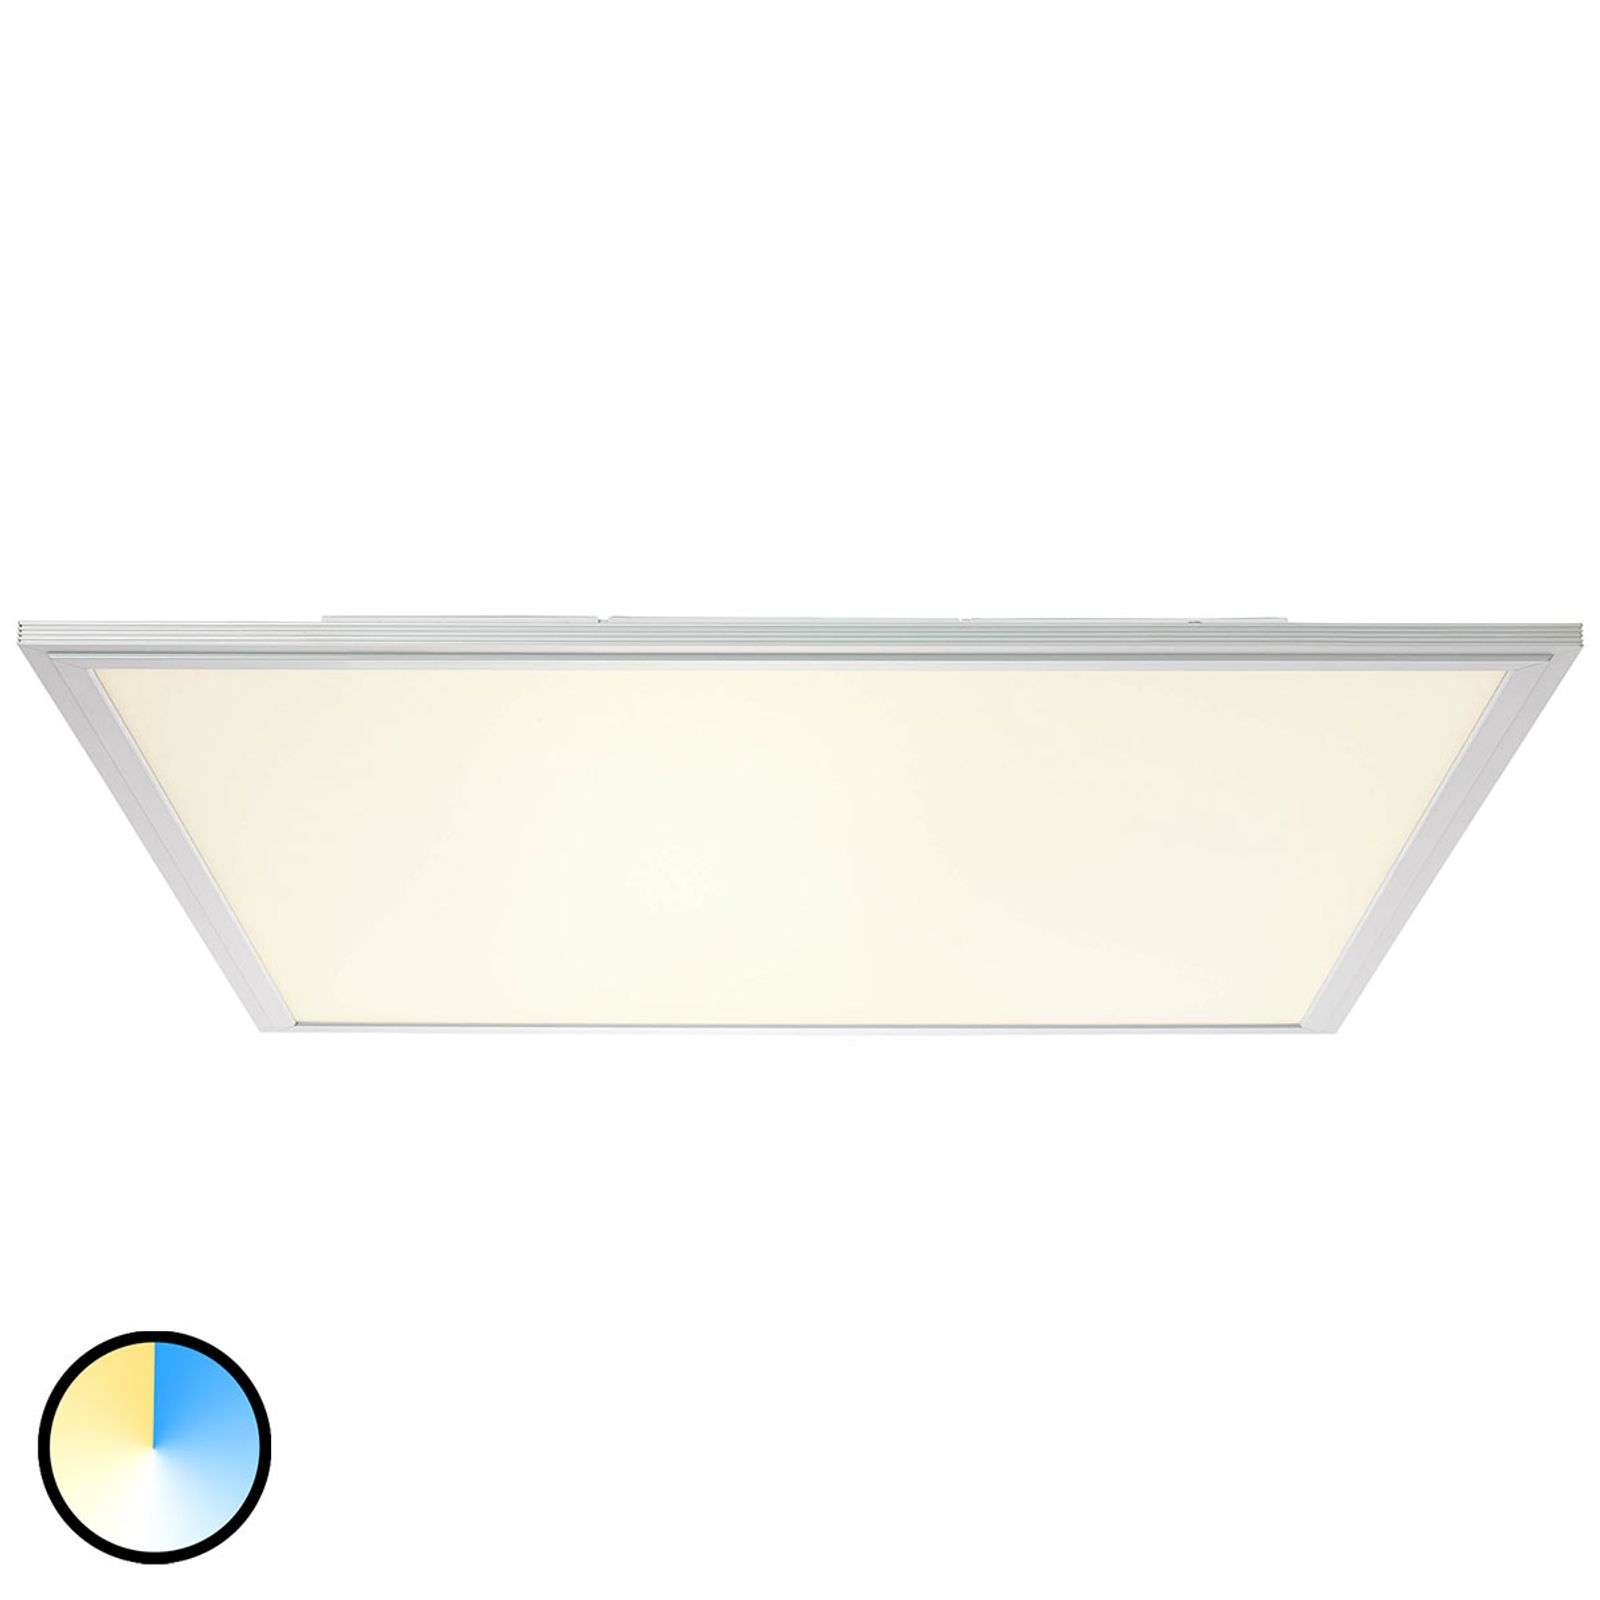 Brilliant WiZ lámpara LED de techo Flat - 60 cm